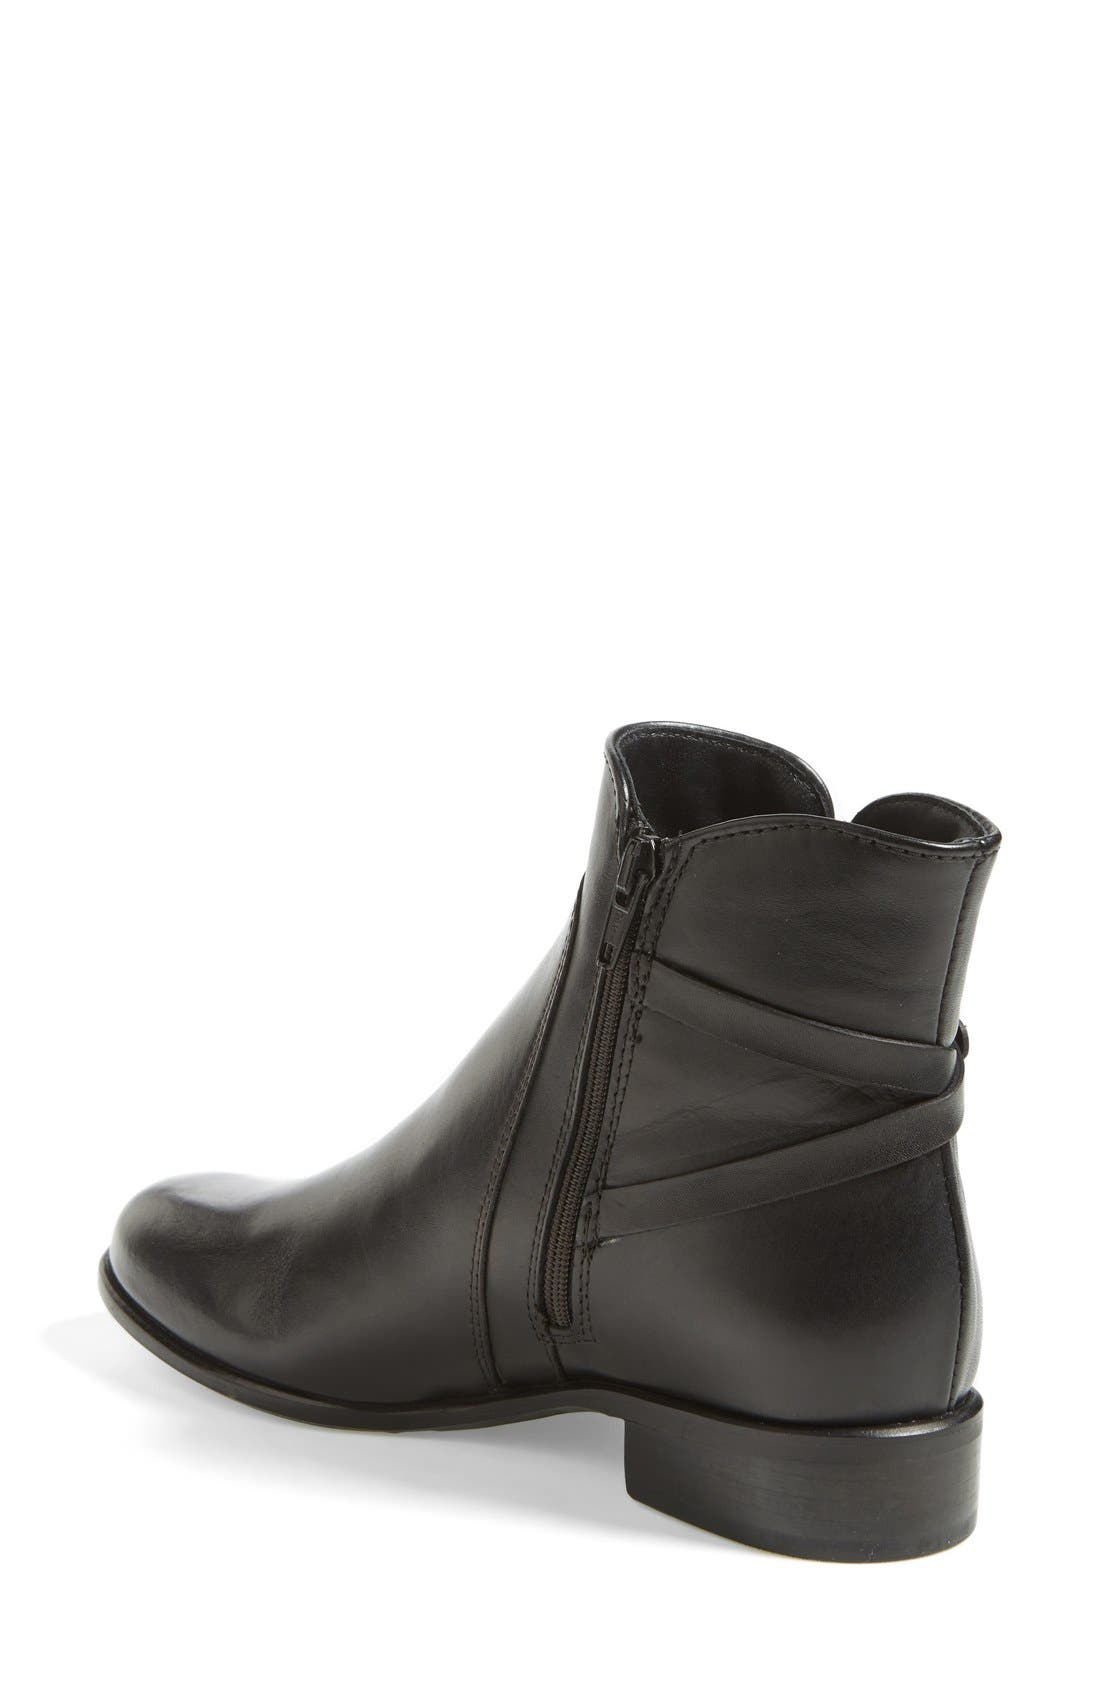 'Sharon' Waterproof Bootie,                             Alternate thumbnail 2, color,                             Black Leather